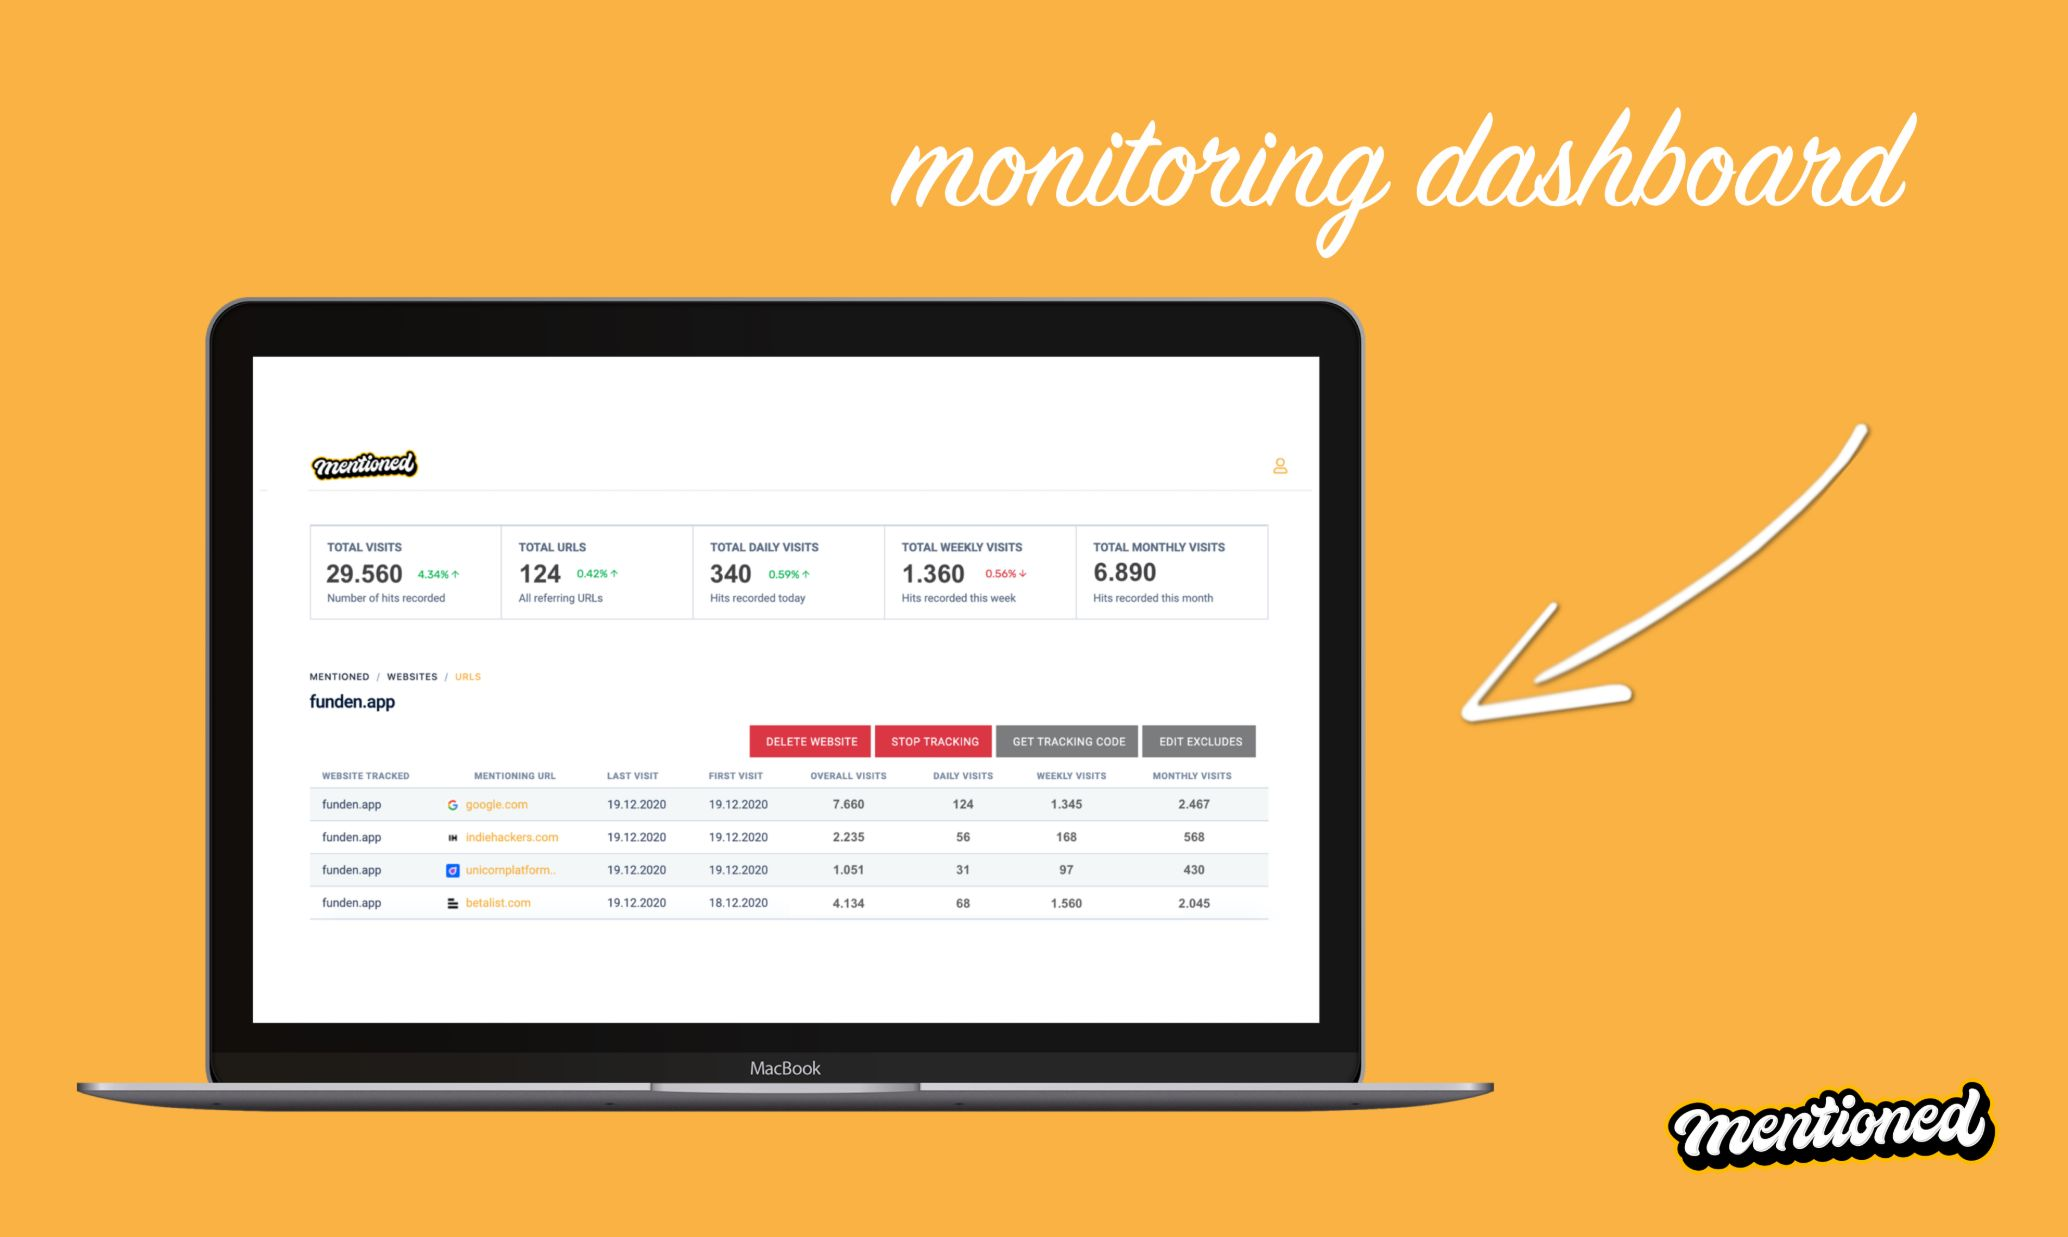 Mentioned App Analytics Monitoring Dashboard